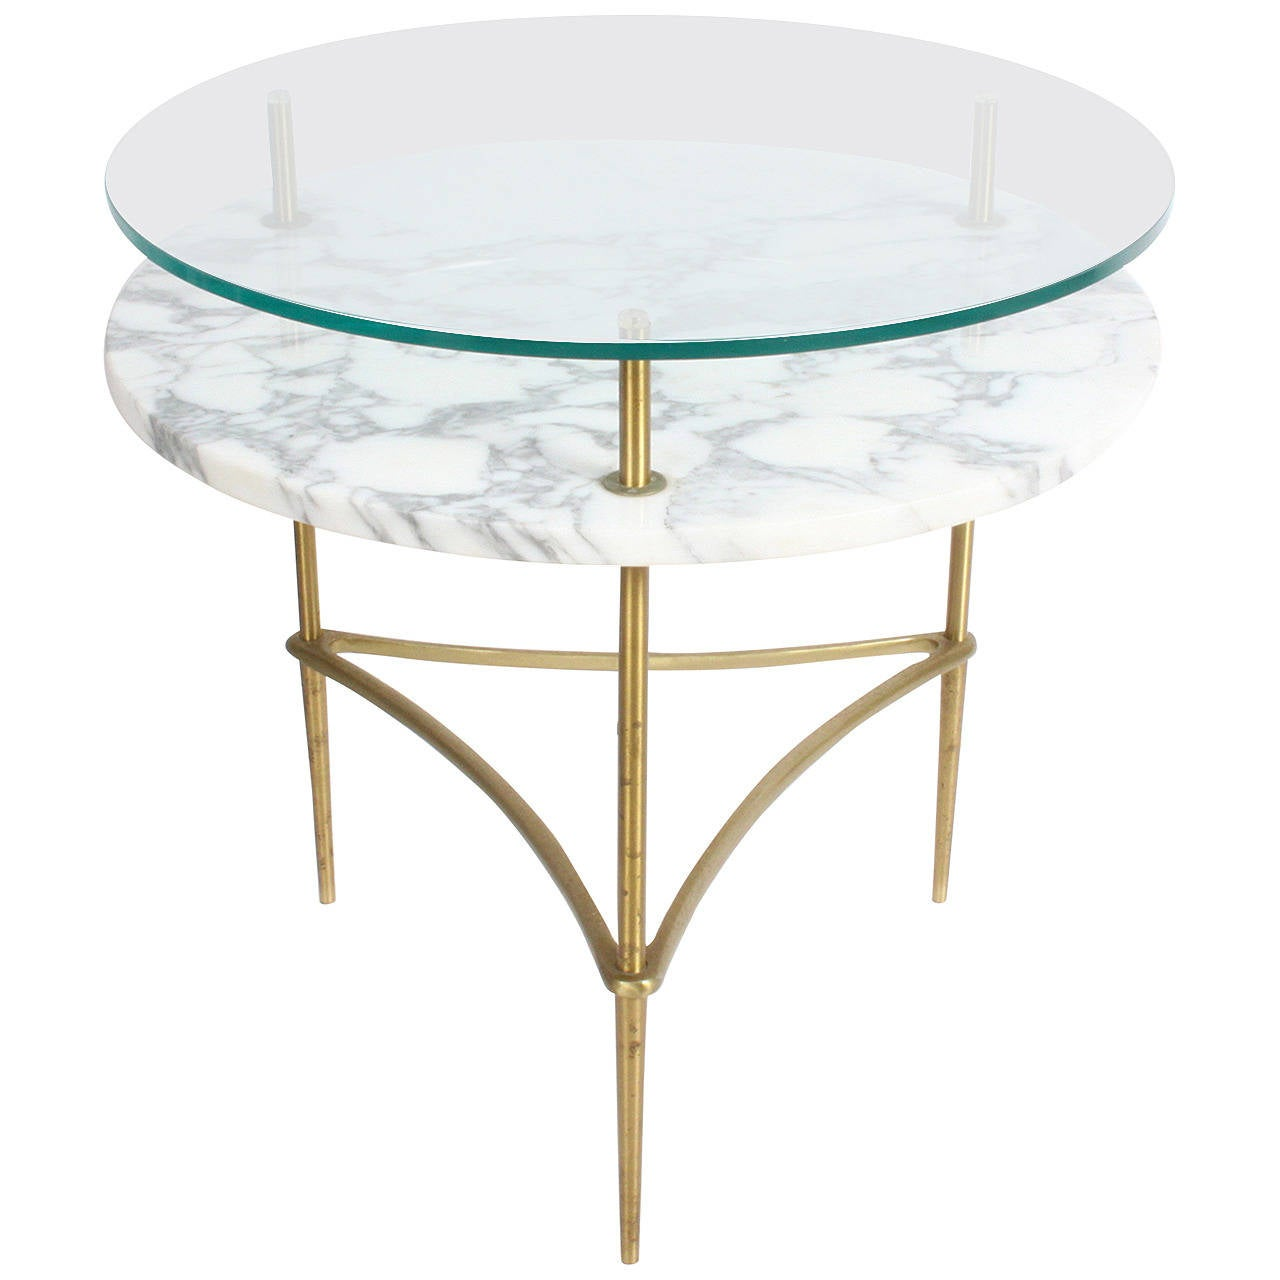 Two Tiered Brass And Glass Coffee Table: Mid-Century Italian Two-Tiered Occasional Table In Brass